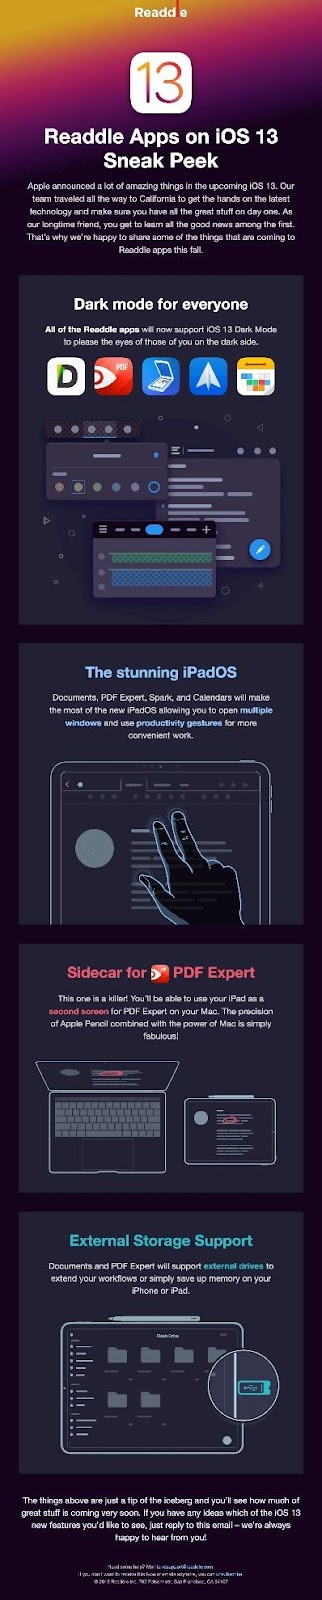 This email identifies the pain point of using traditional light modes on devices, which are known to cause eyestrain and other issues. The solution—Dark mode.